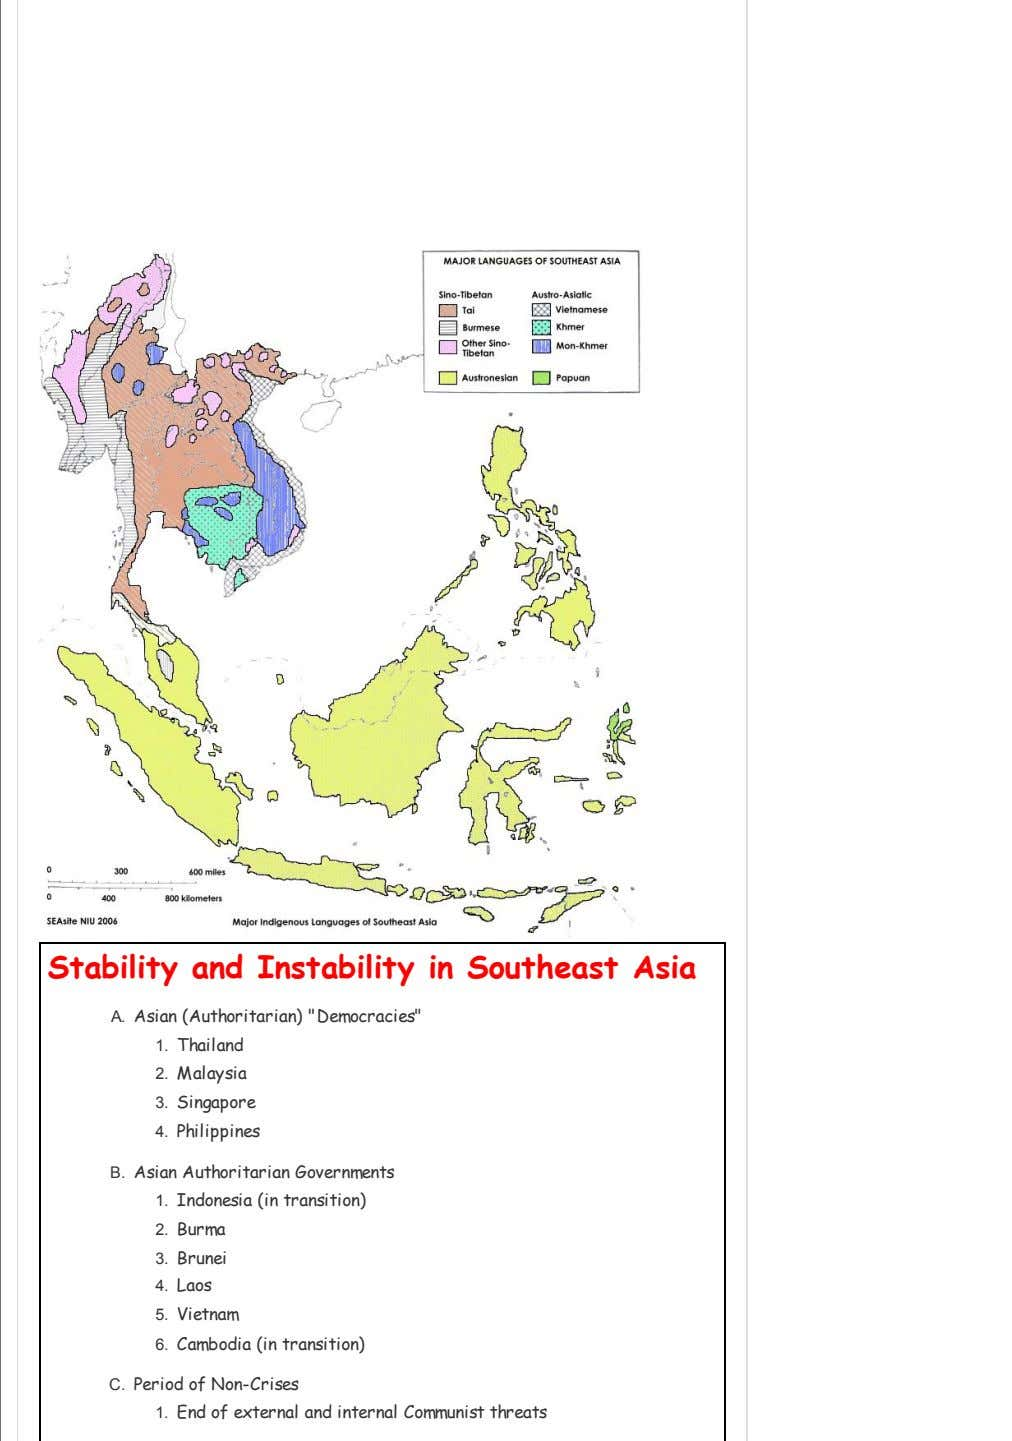 "Stability and Instability in Southeast Asia A. Asian (Authoritarian) ""Democracies"" 1. Thailand 2. Malaysia 3. Singapore"